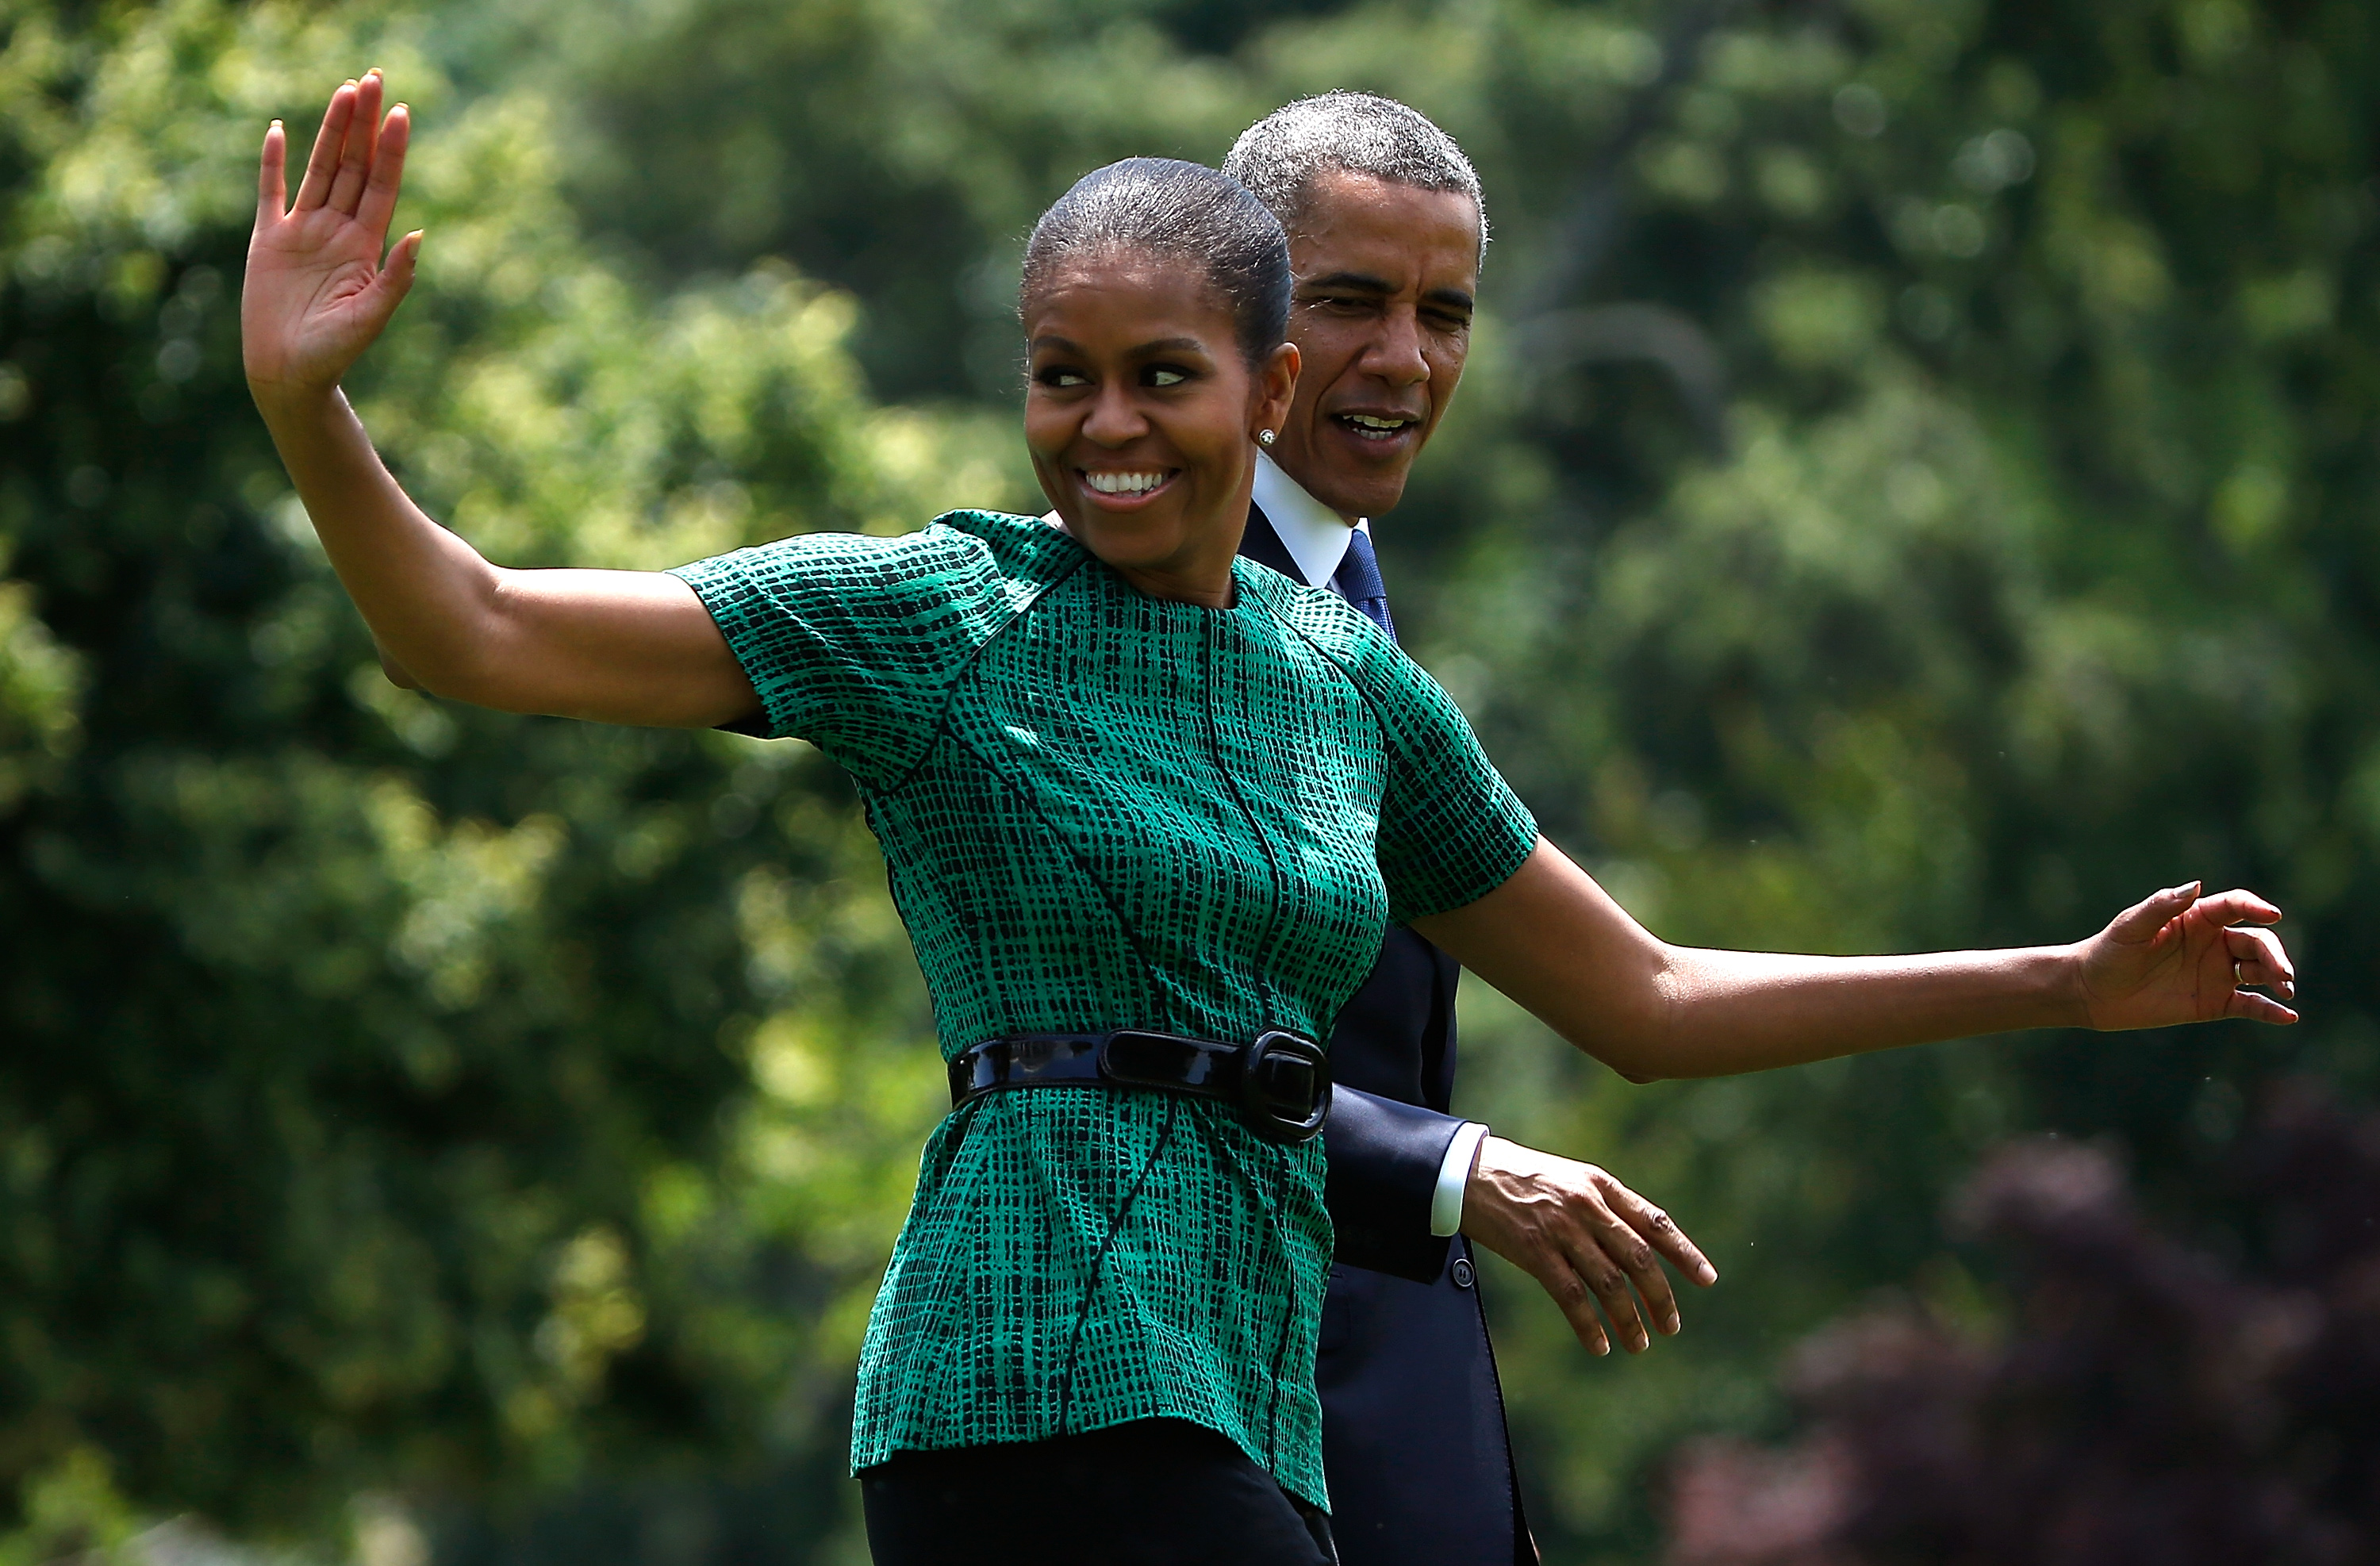 First lady Michelle Obama and U.S. President Barack Obama wave